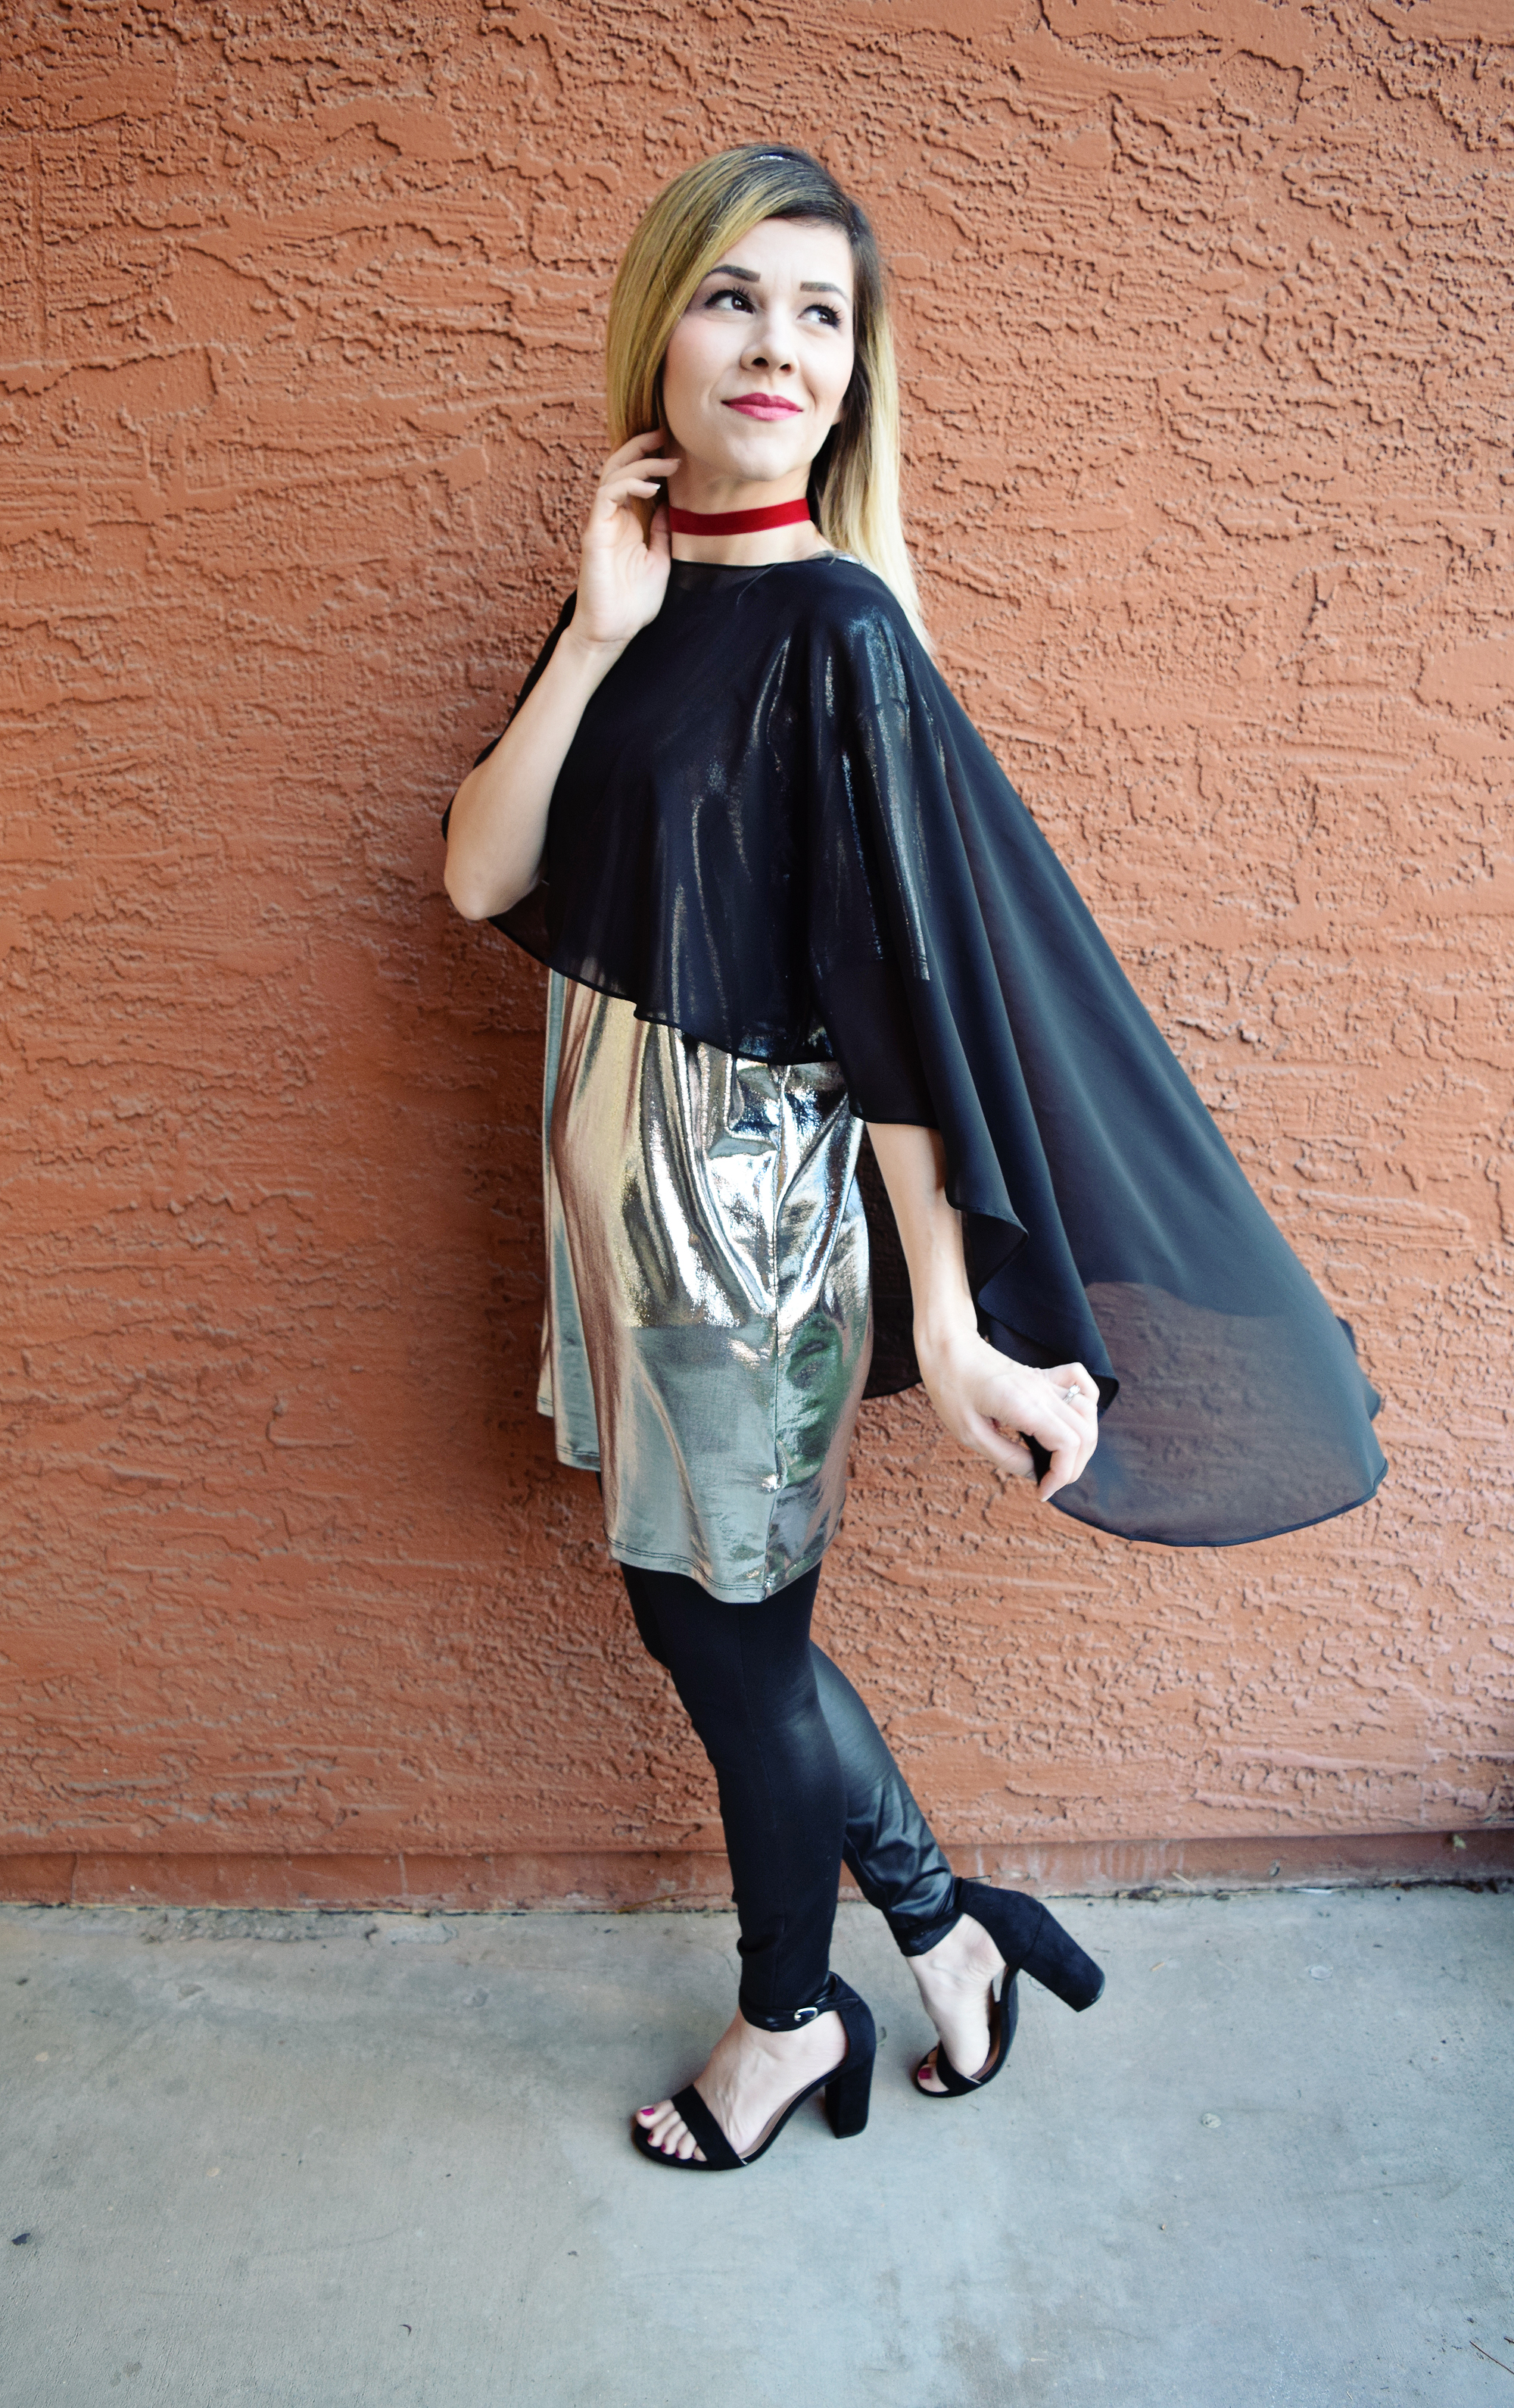 Star Wars OOTD: Captain Phasma | Anakin and His Angel